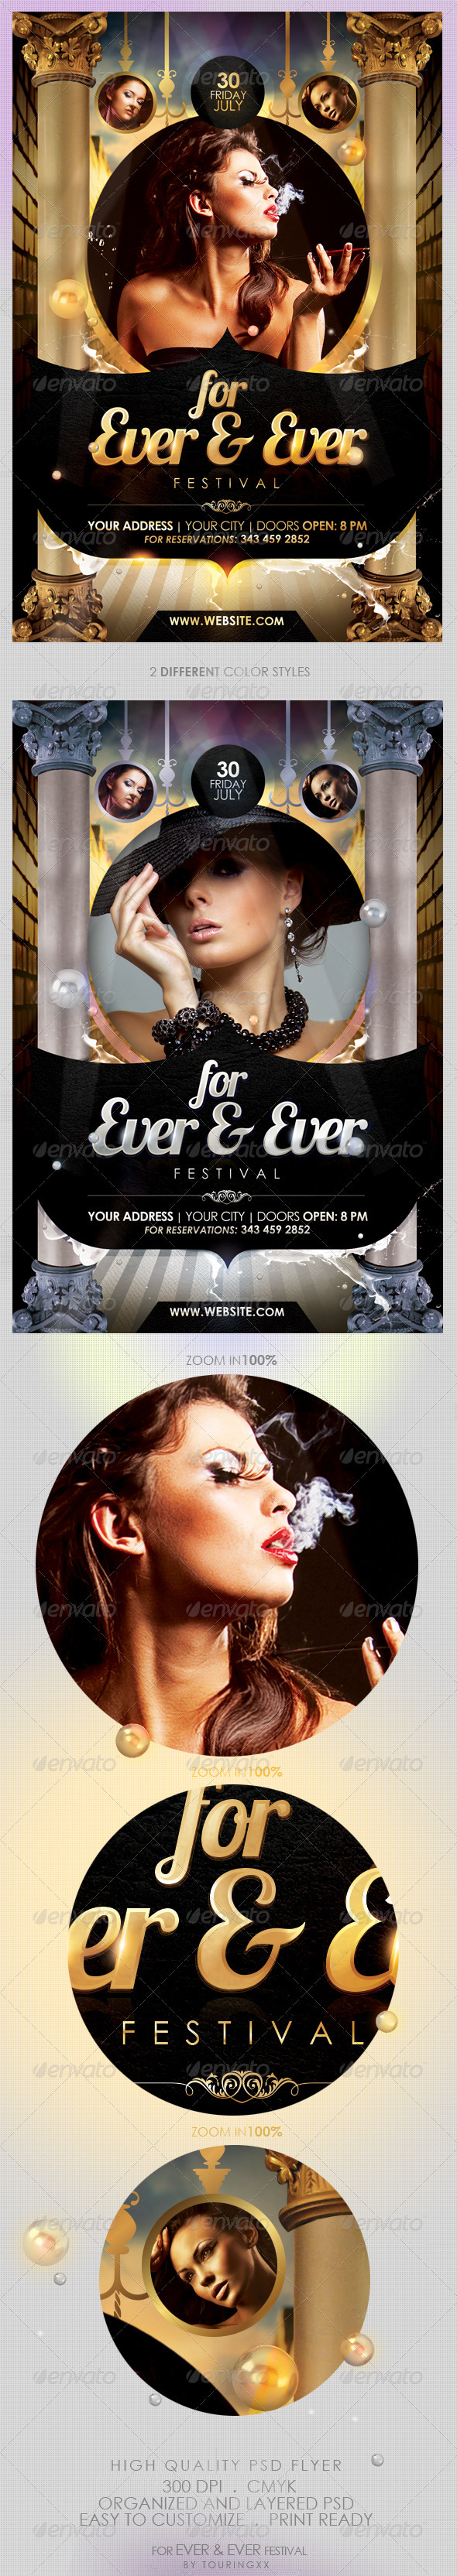 For Ever & Ever Festival Flyer Template - Clubs & Parties Events